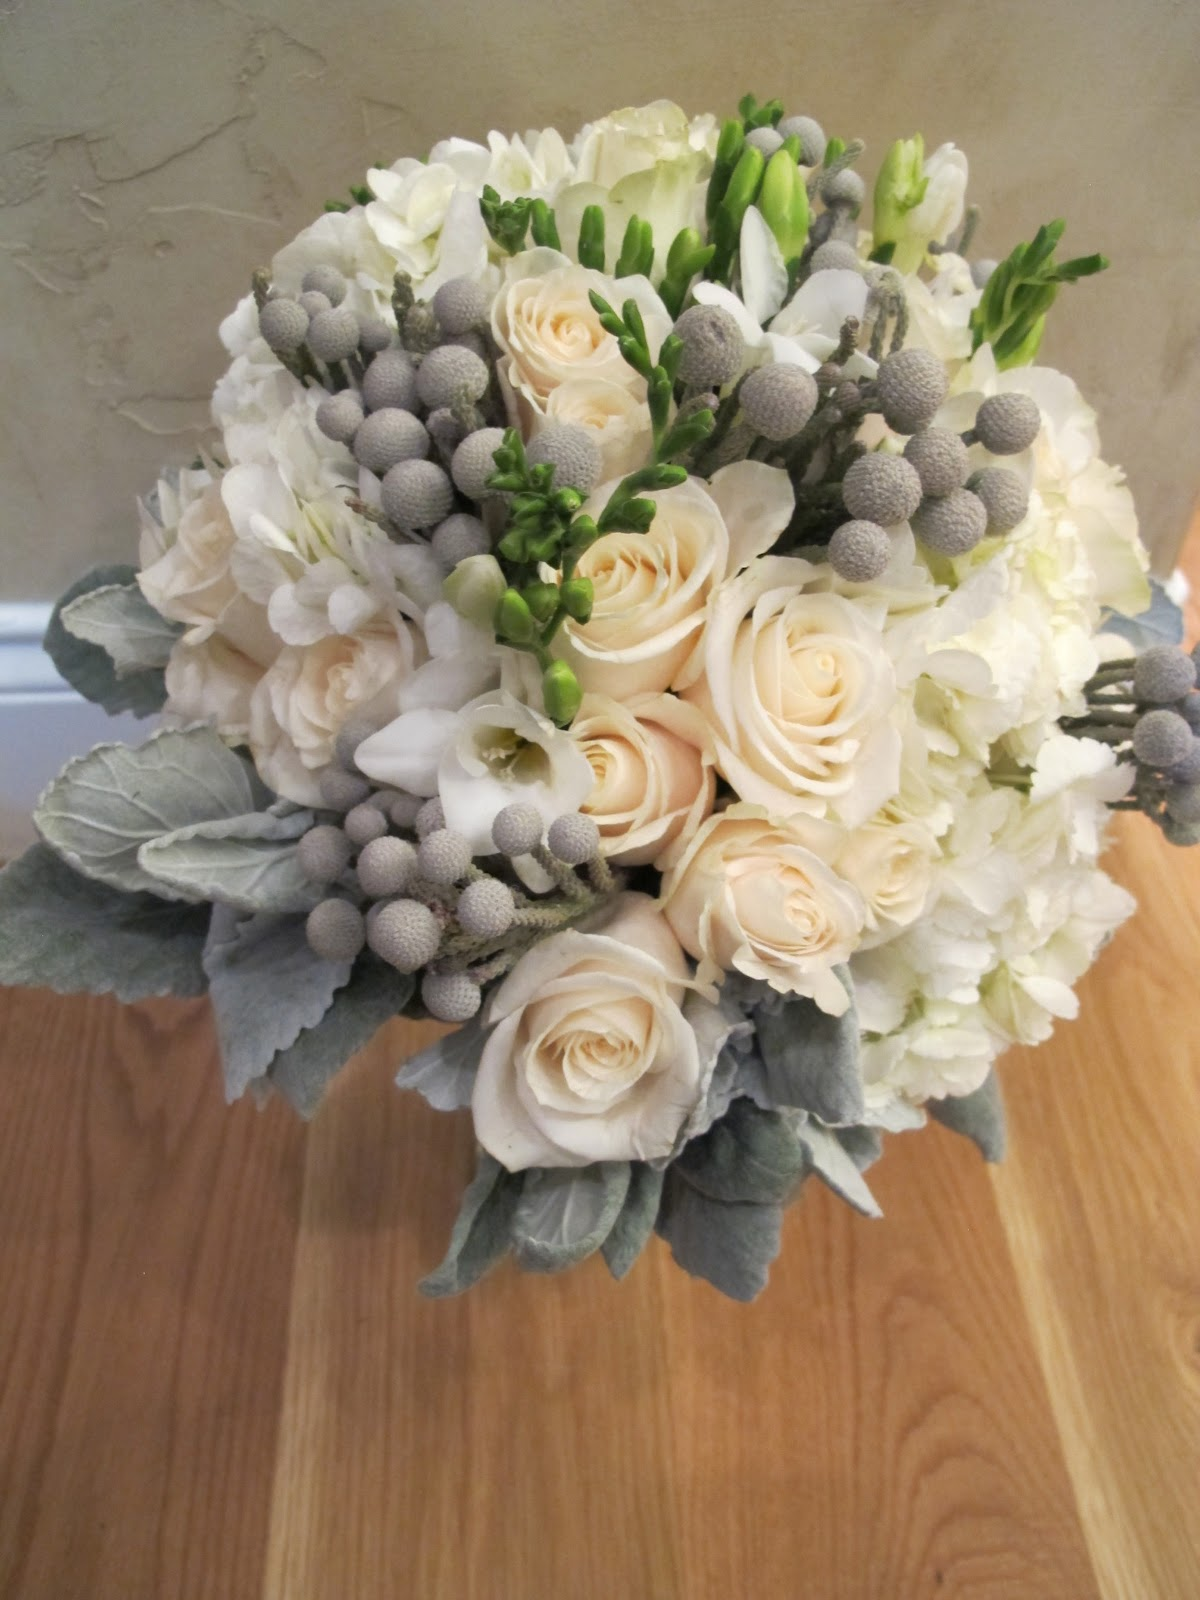 Hydrangea Cream Roses Silver Brunia And Freesia With Dusty Miller